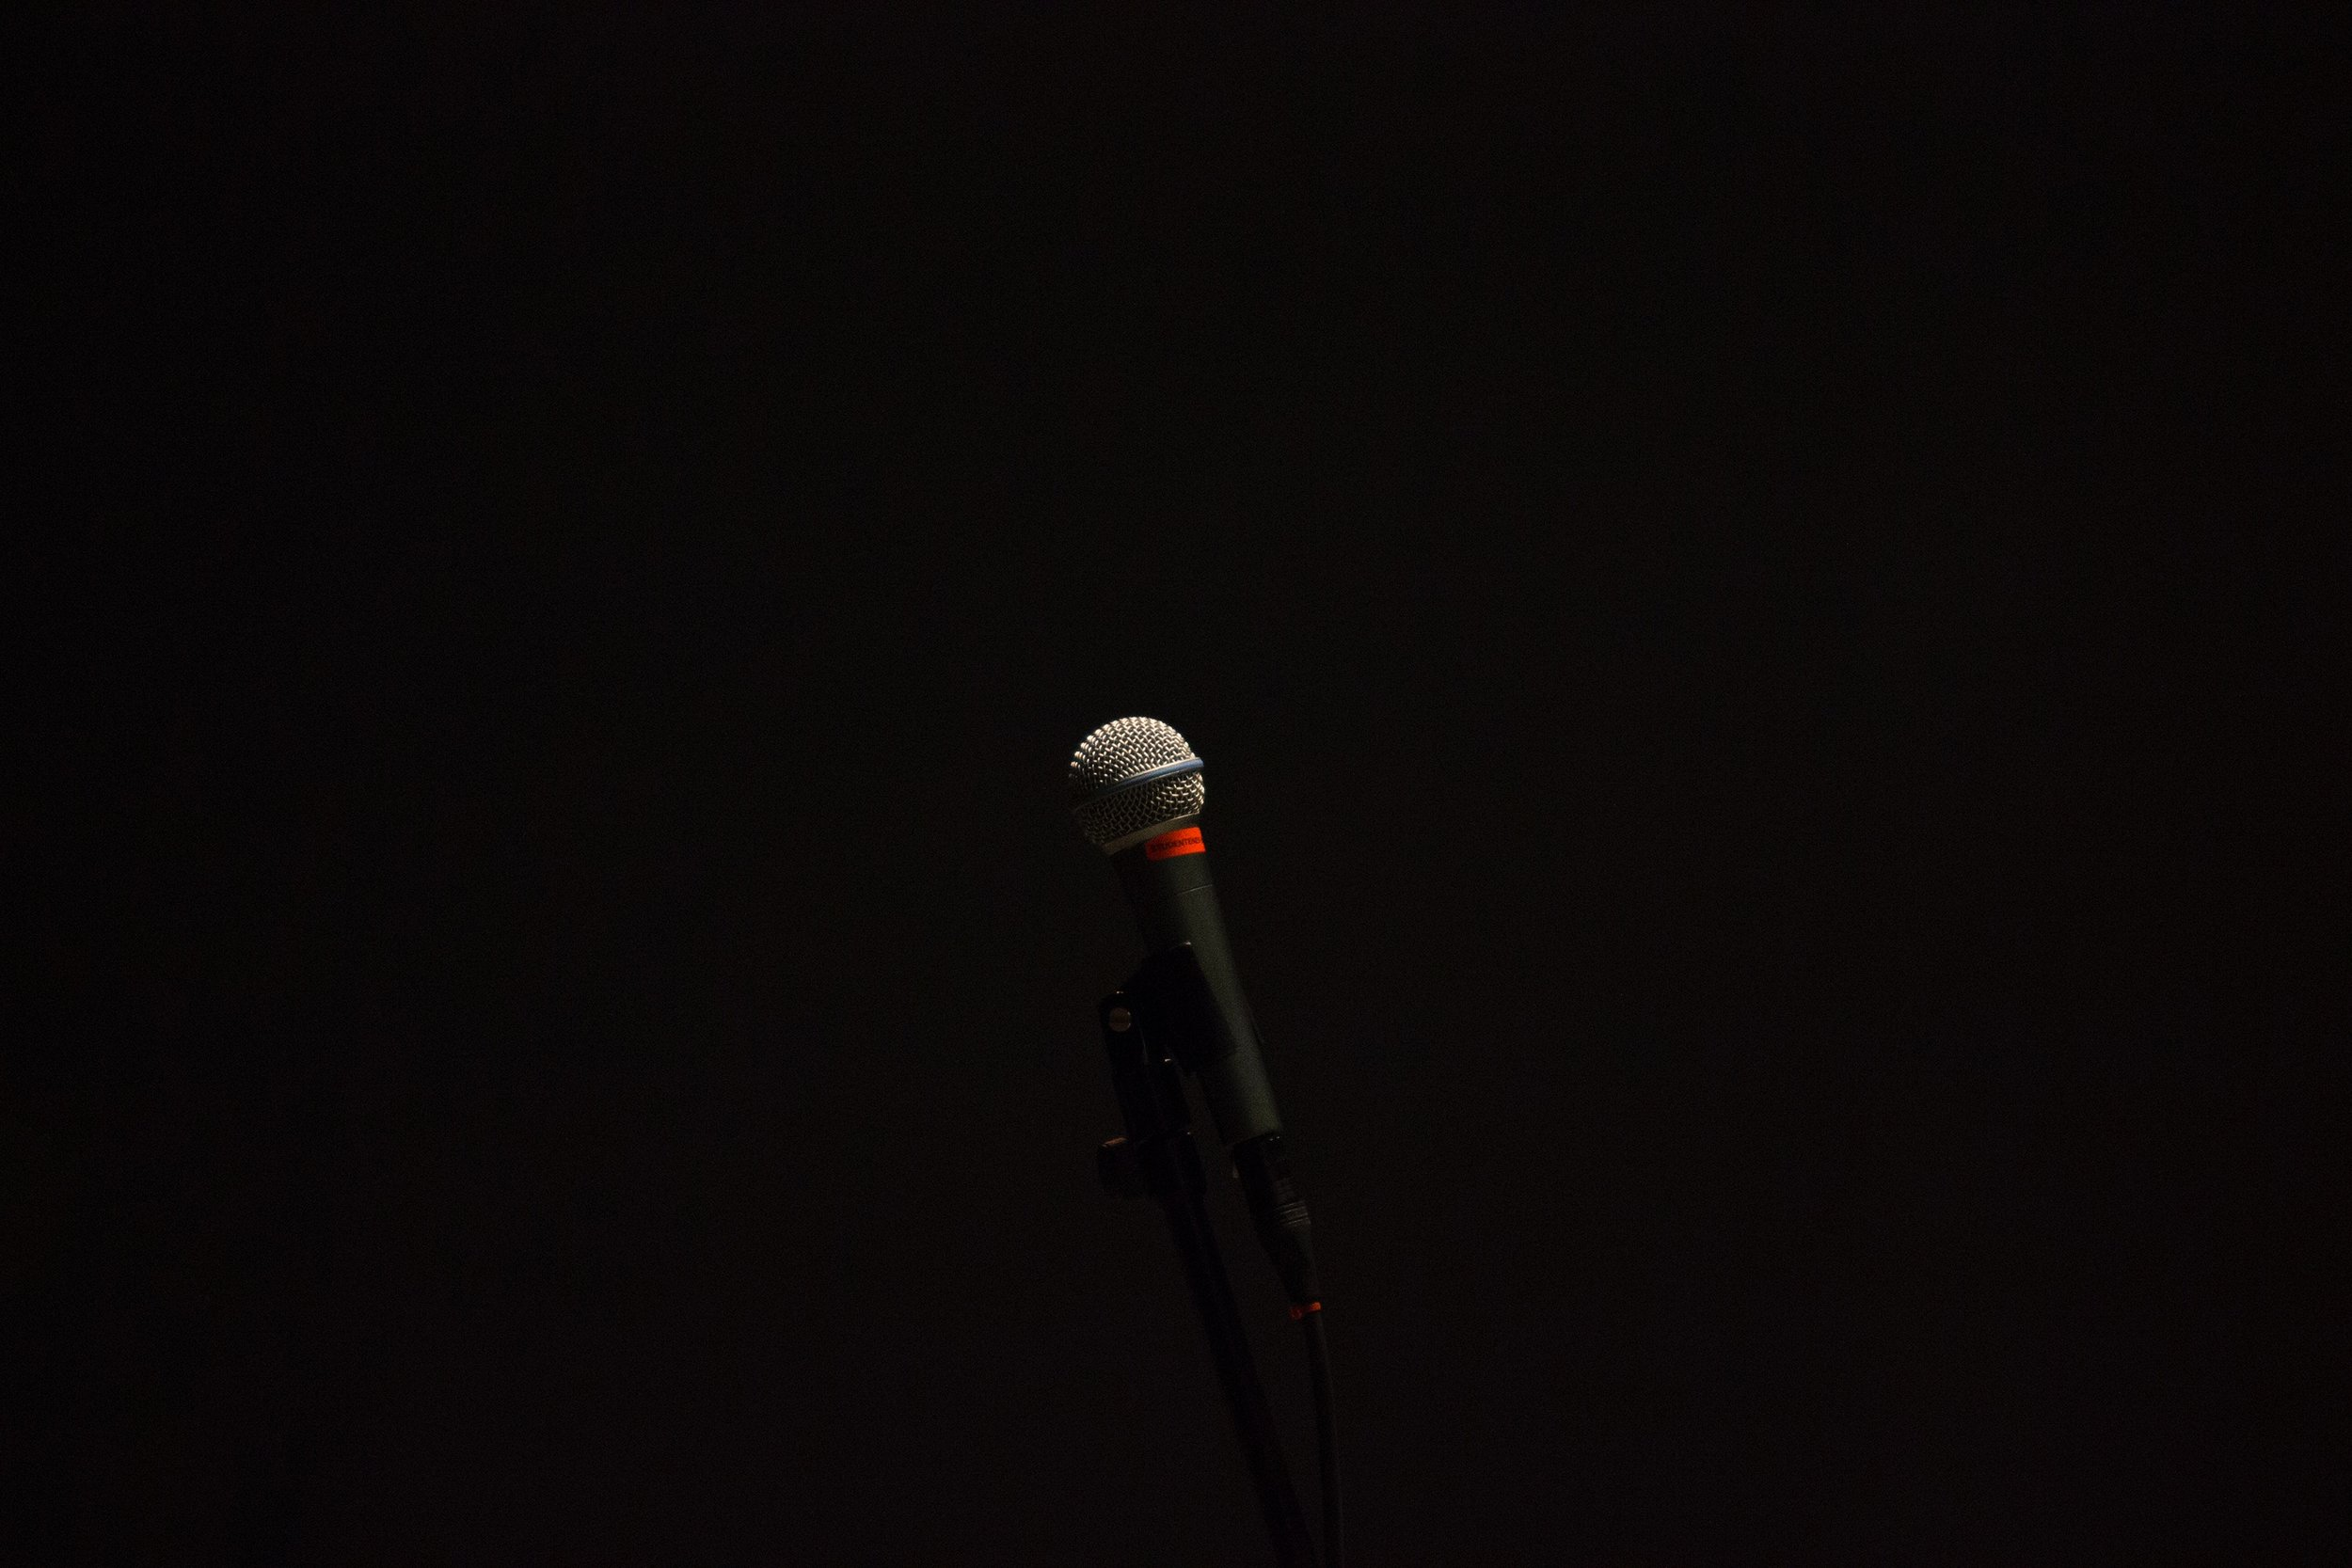 A photo of a microphone.